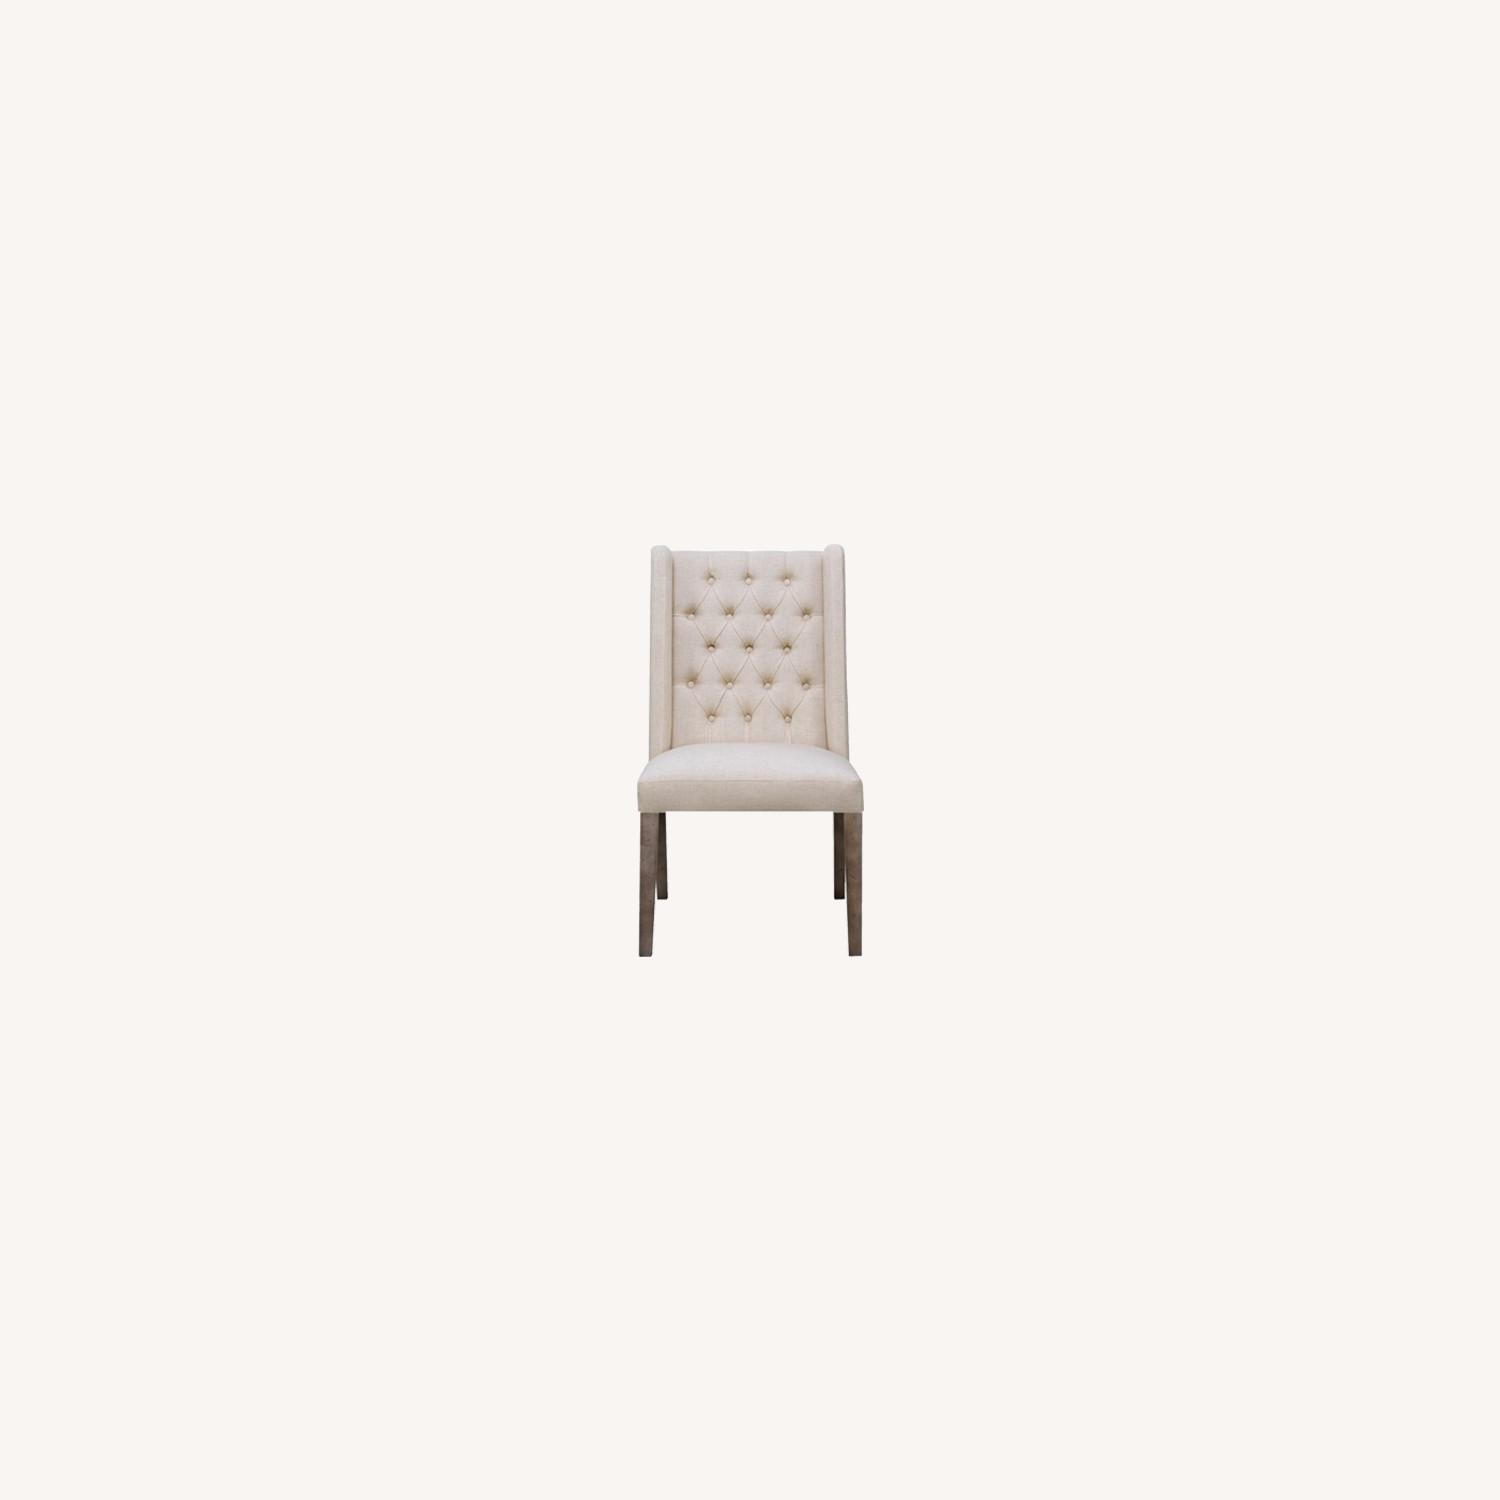 Transitional Side Chair In Beige Fabric - image-5